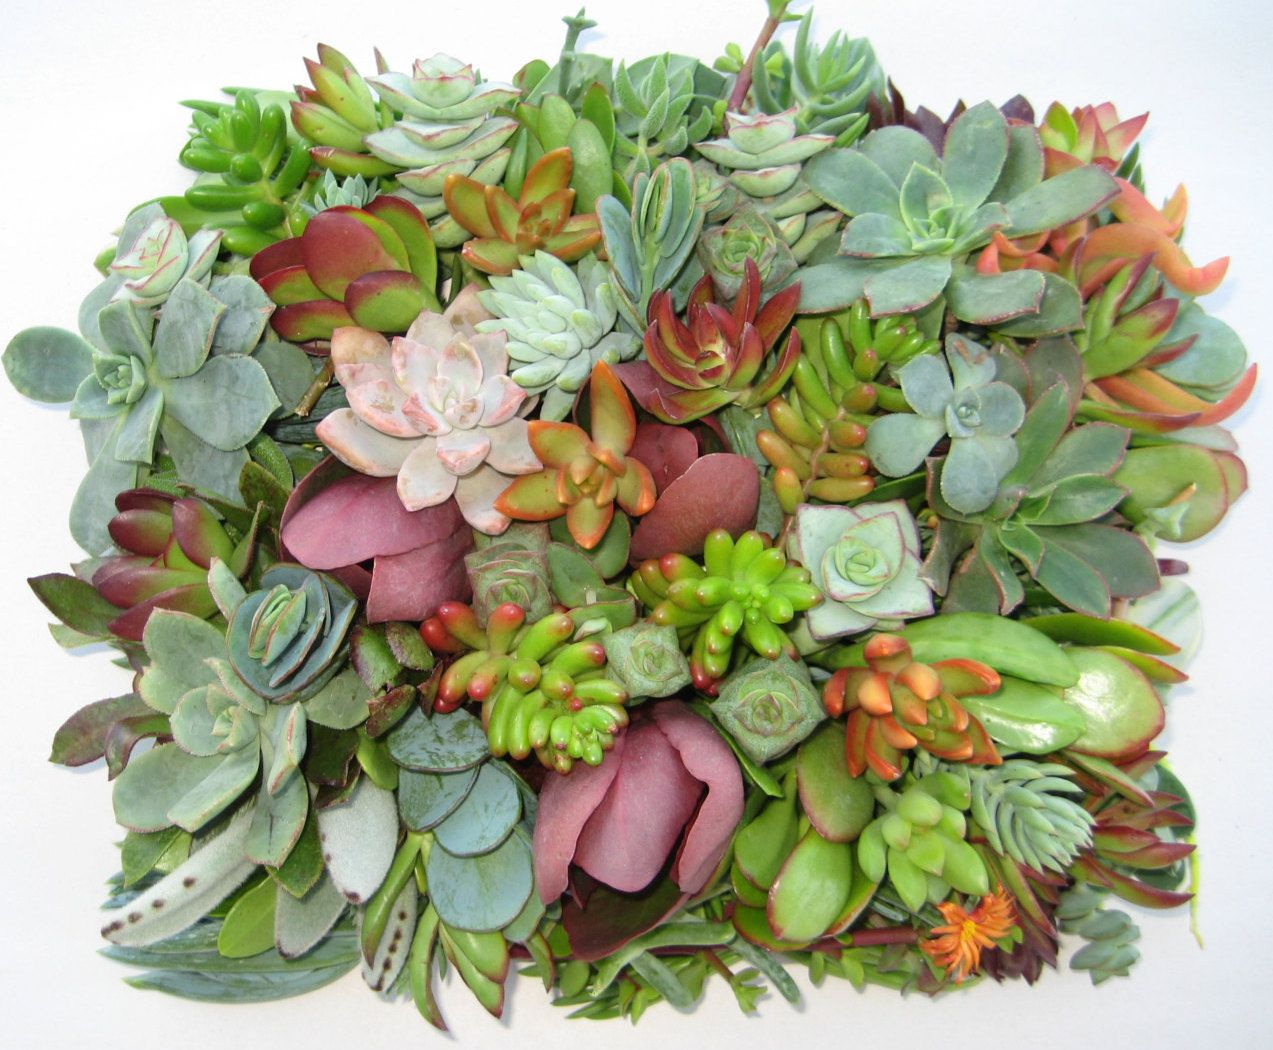 On Sale Succulent Cuttings Succulent Clippings 20 Different 1 5 Large Succulent Clippings Succulent Kit Su Succulent Cuttings Succulents Planting Succulents